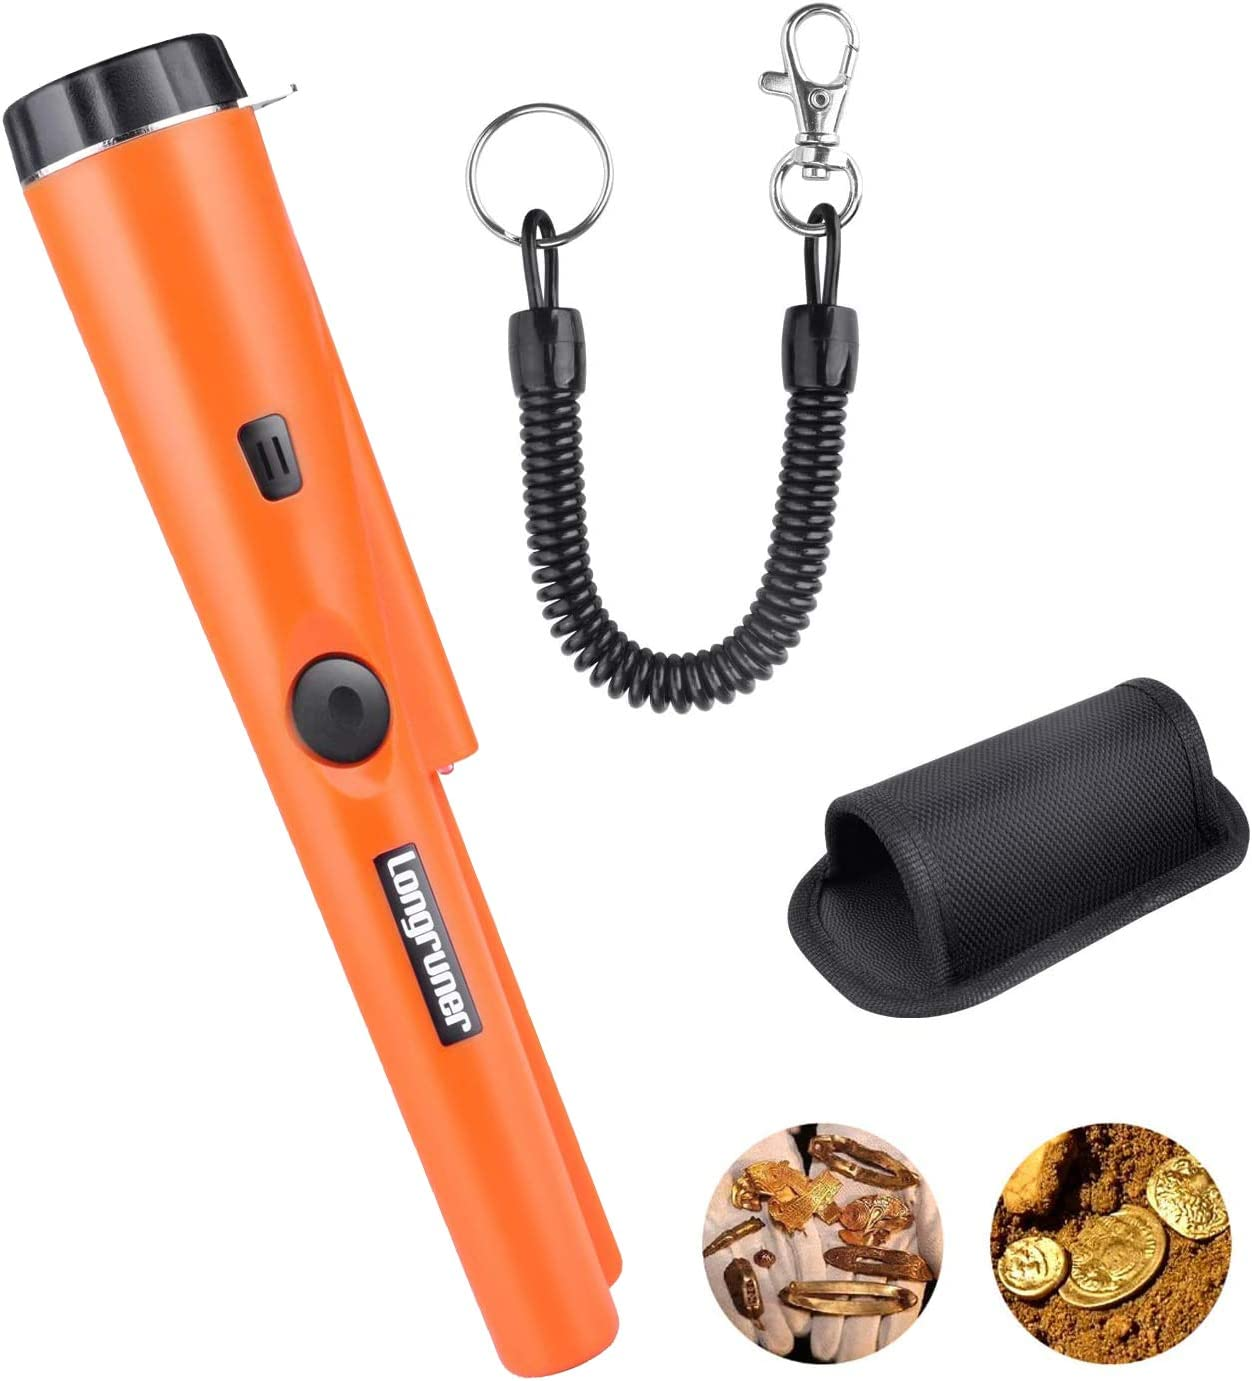 Longruner Metal Detector Pin Pointer Probe Waterproof Handheld Pinpointer with Holster Treasure Hunting Unearthing Tool Accessories